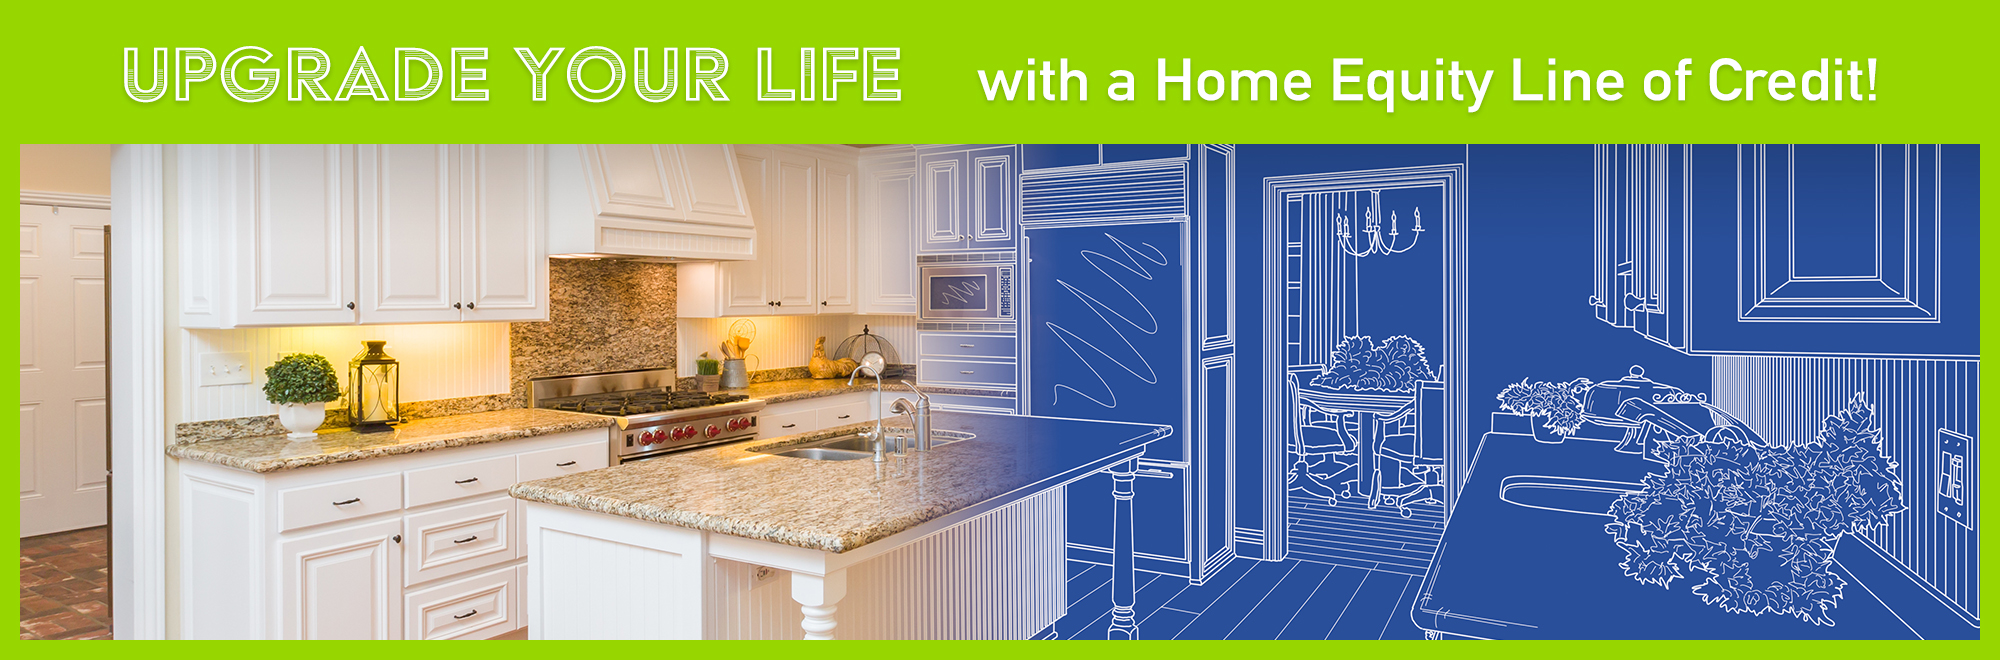 Upgrade your home with a home equity line of credit